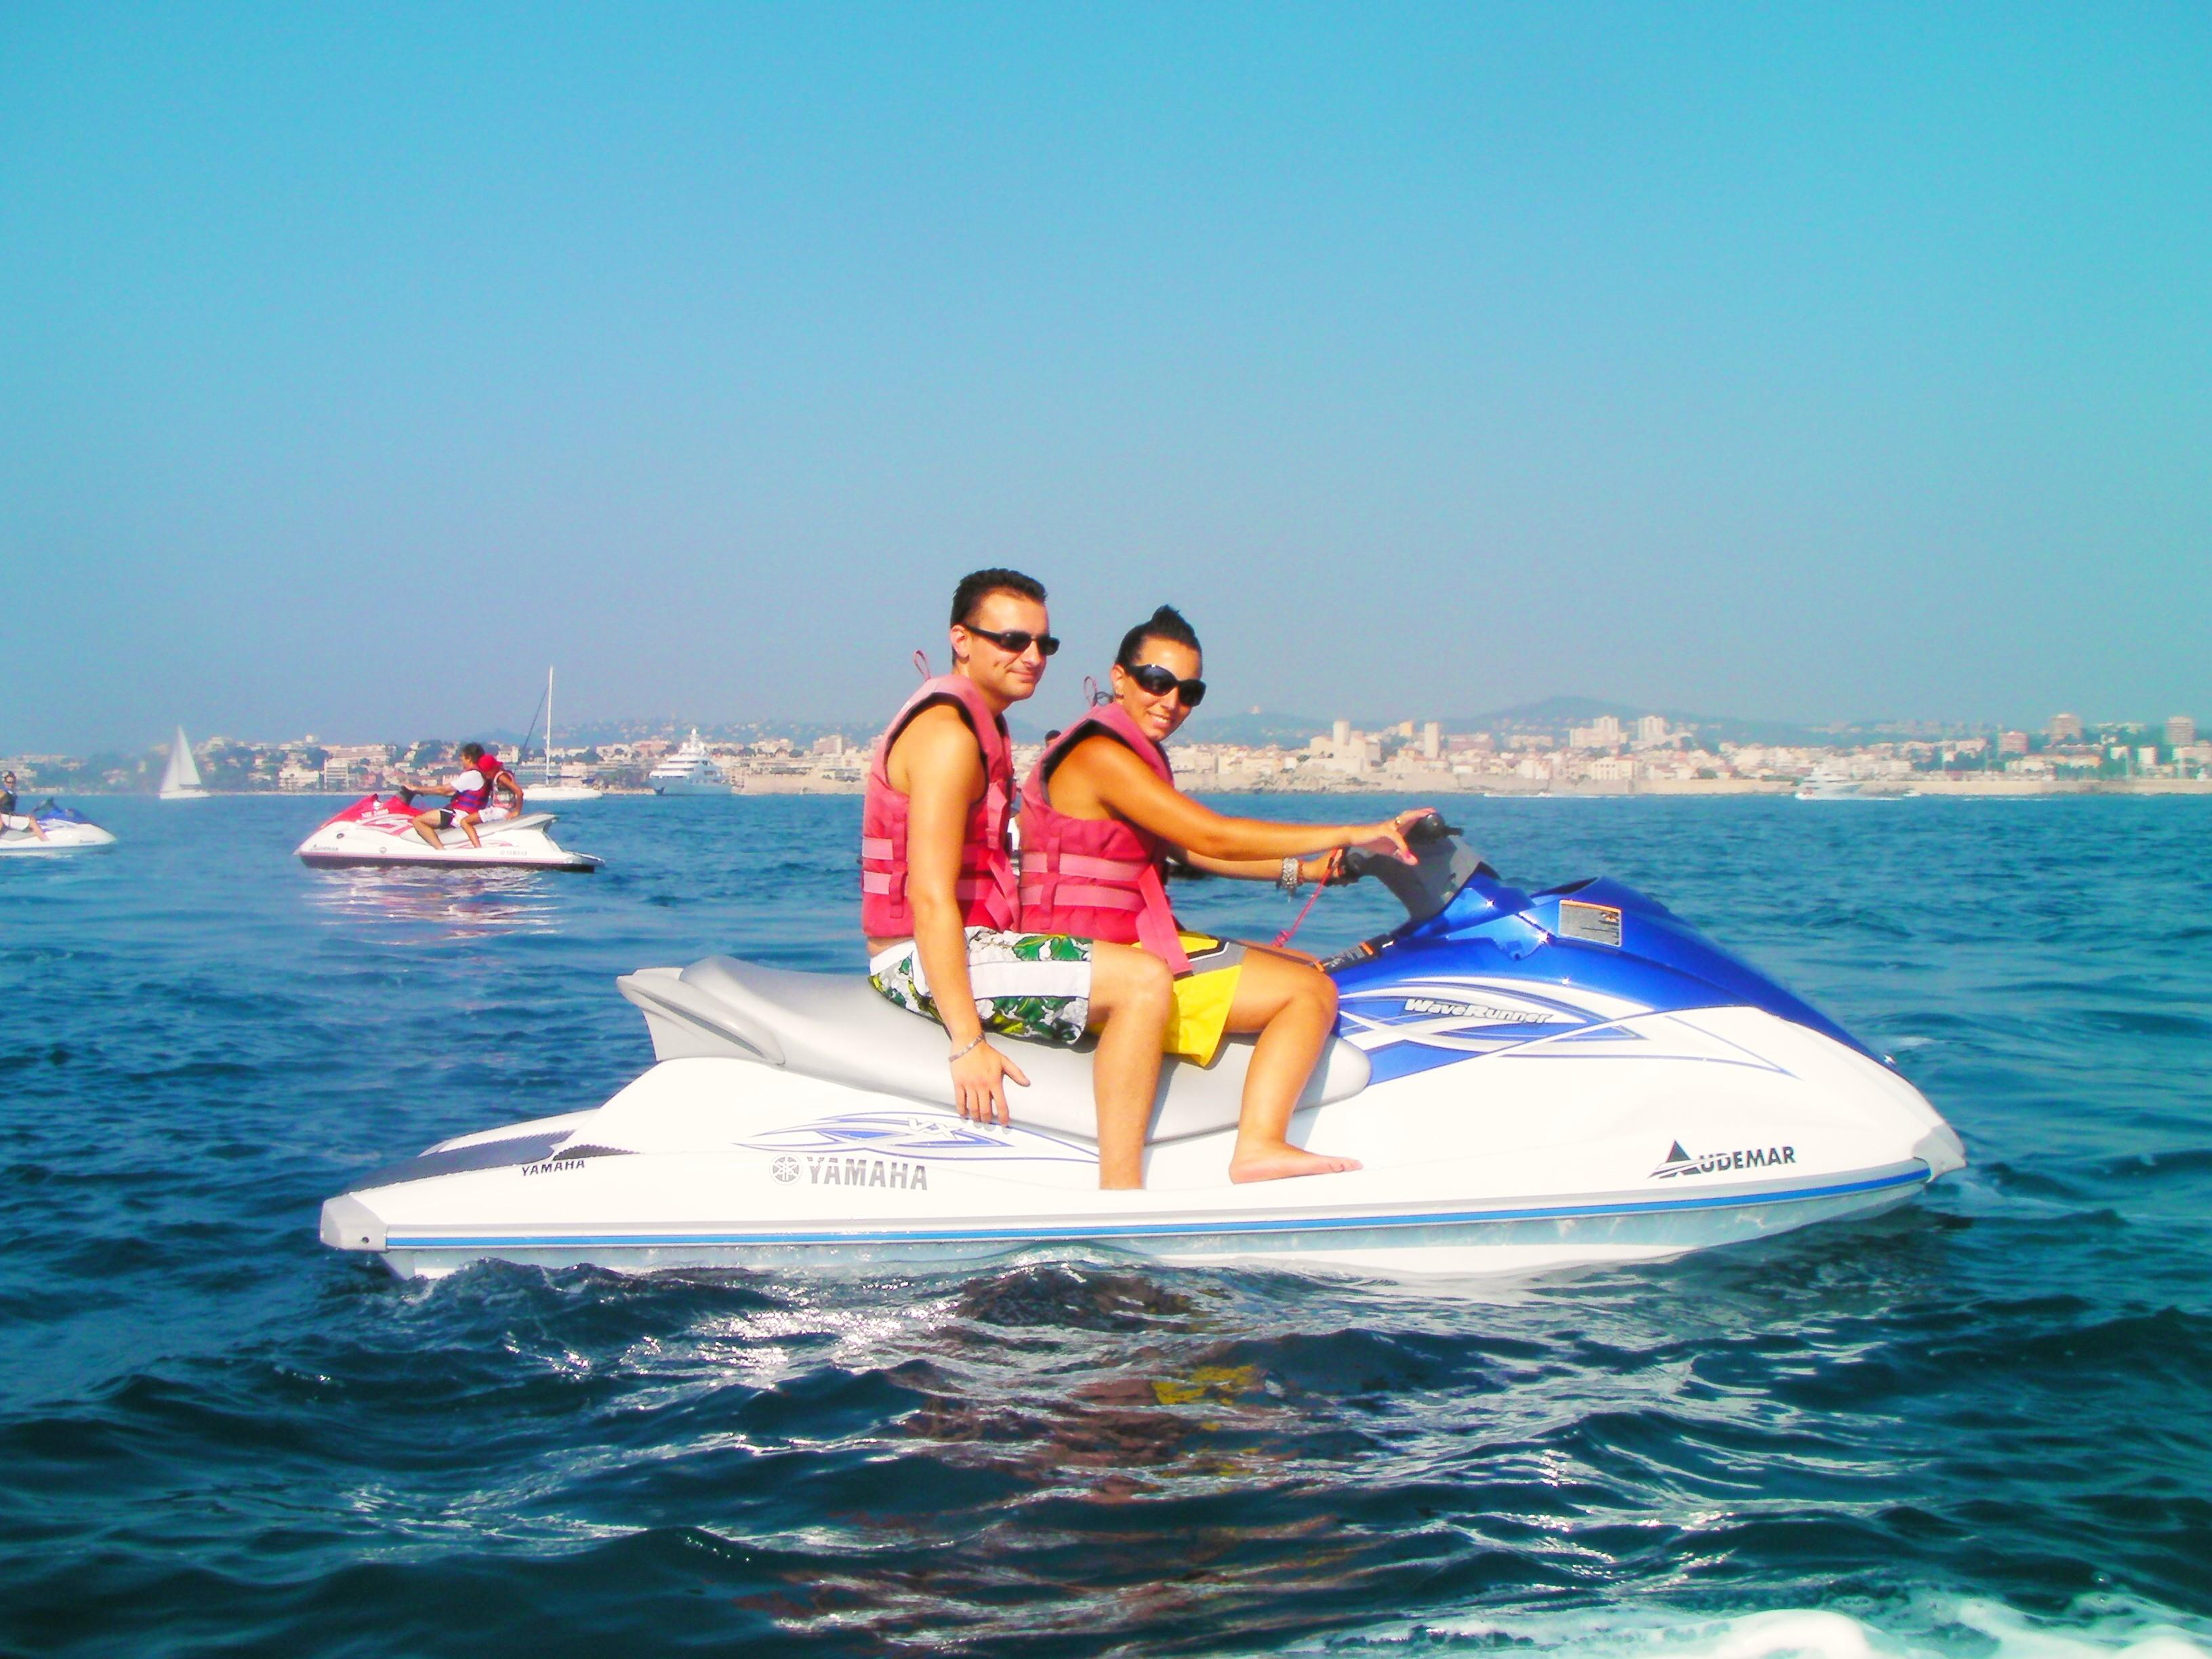 Introductory Jet Ski Session in the Baie des Anges in Nice